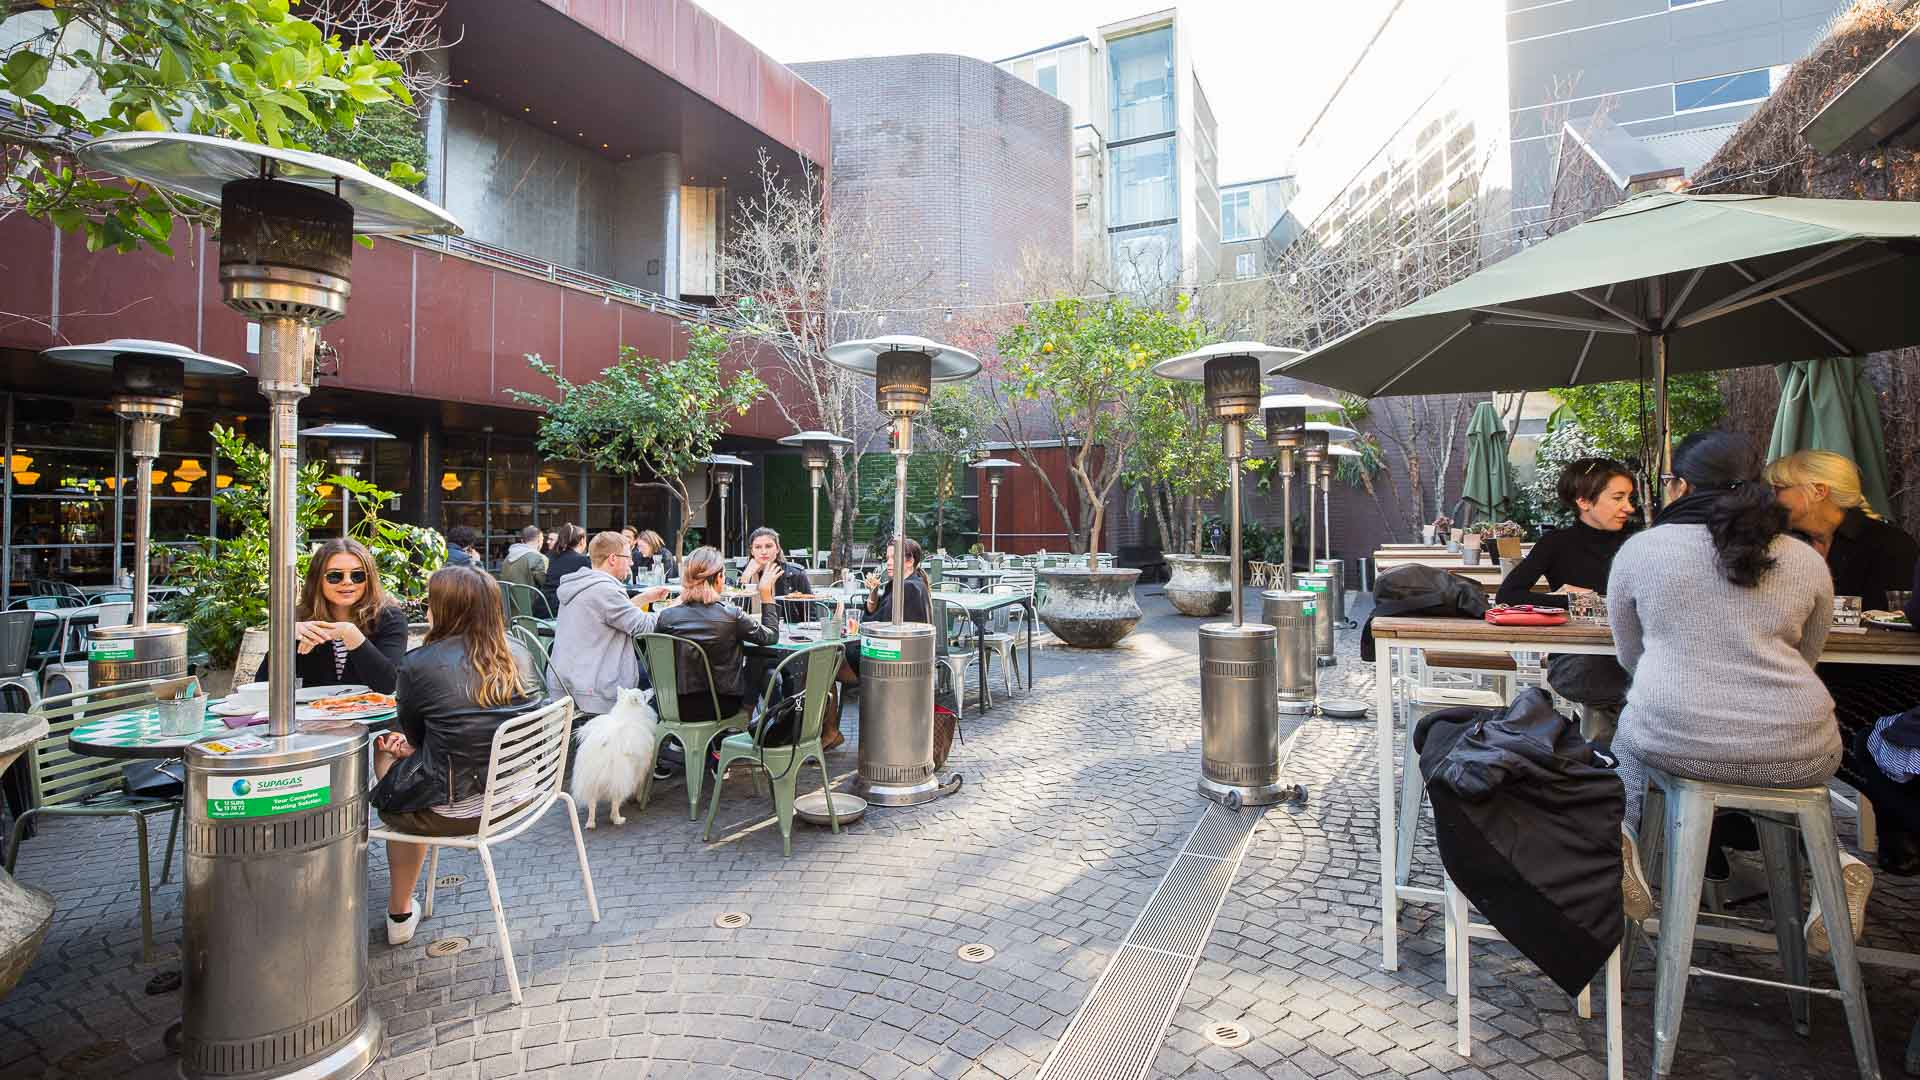 NSW Restaurants, Cafes and Pubs Will Be Allowed to Increase Their Outdoor Capacity From October 16